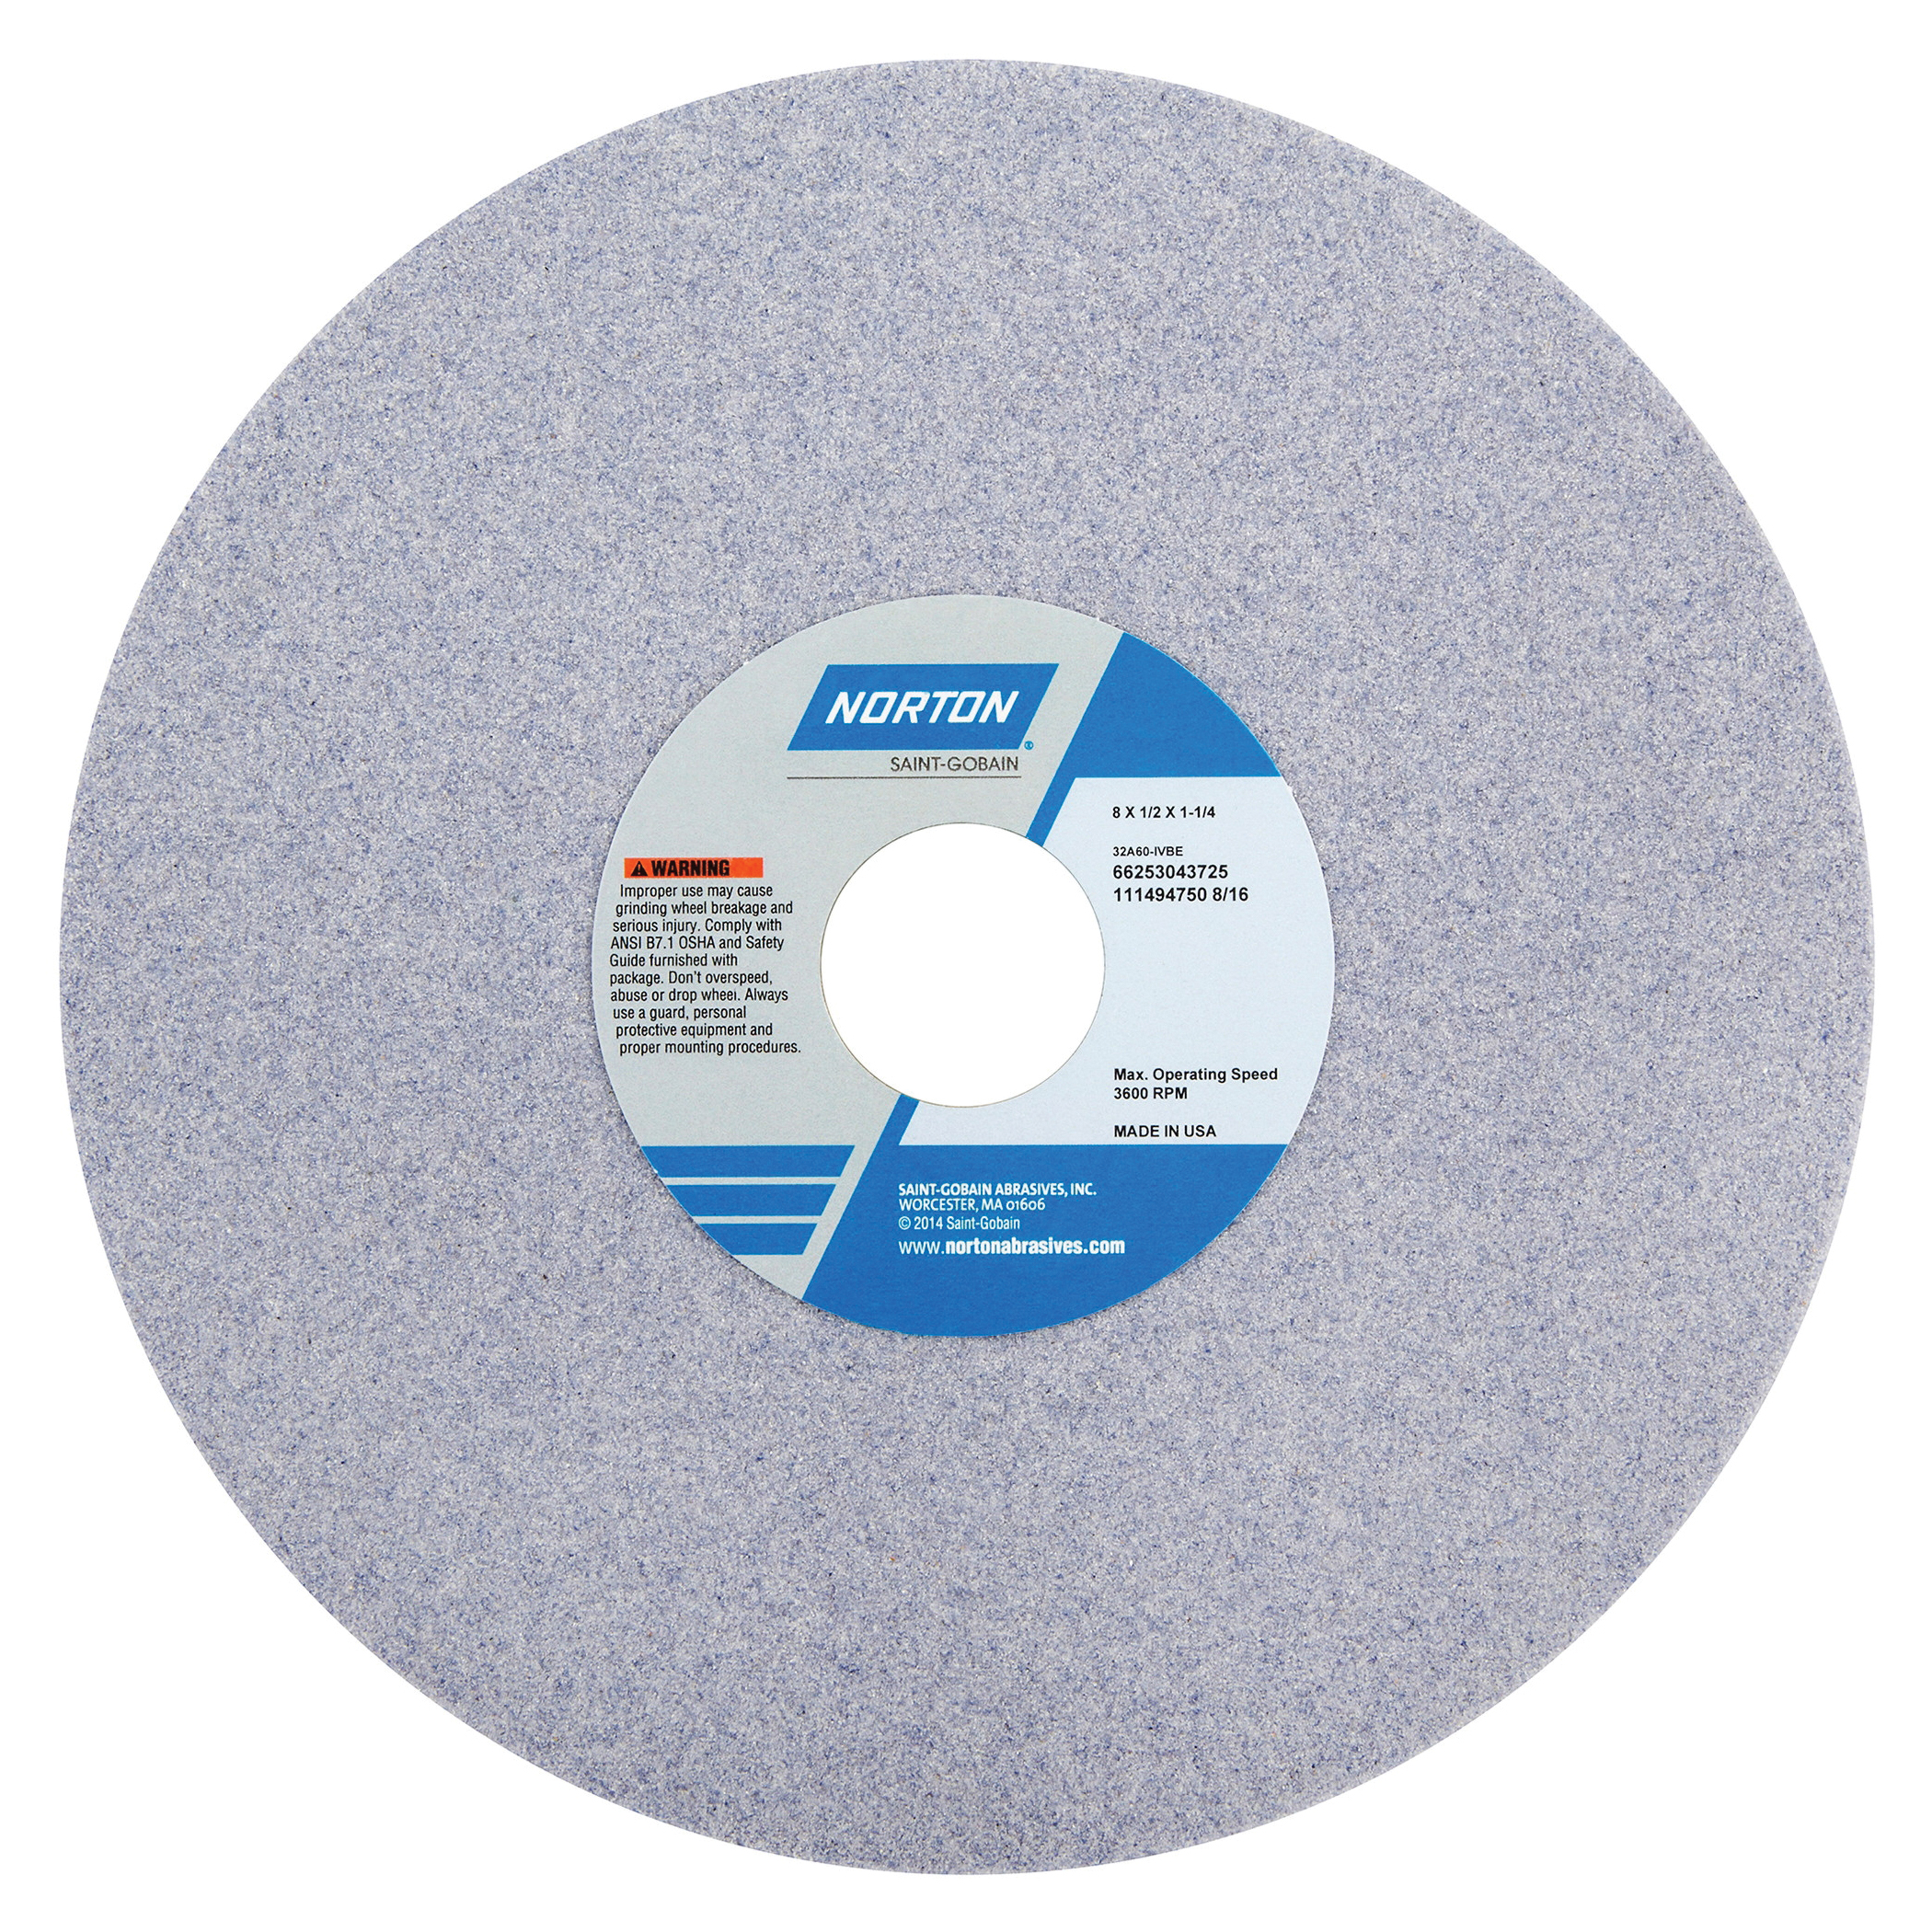 Norton® 66253043715 32A Straight Toolroom Wheel, 8 in Dia x 1/2 in THK, 1-1/4 in Center Hole, 46 Grit, Aluminum Oxide Abrasive